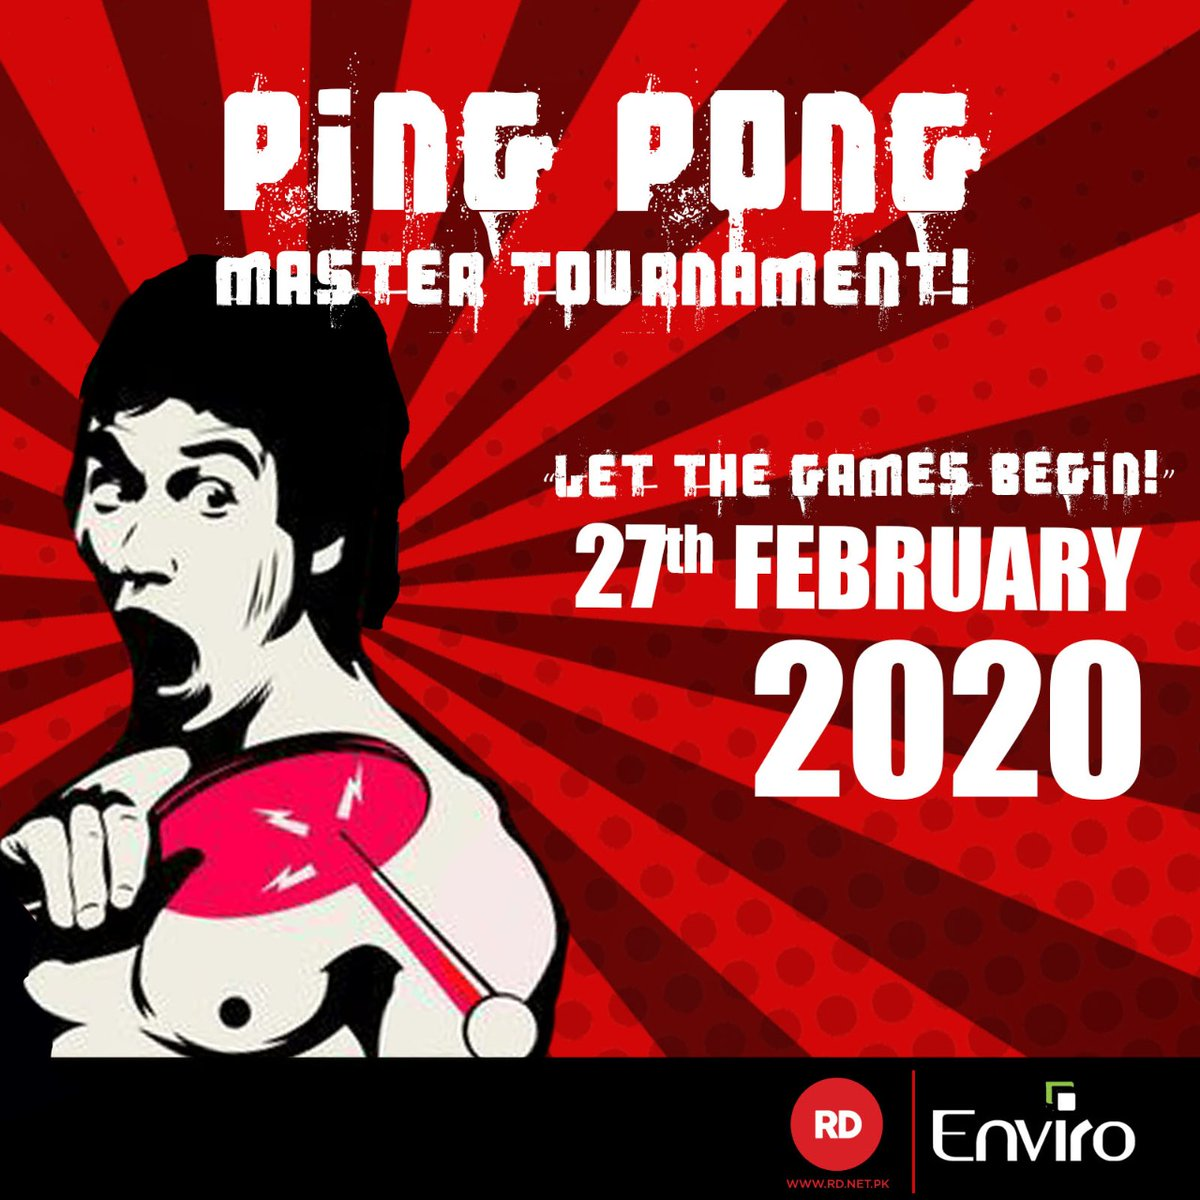 Stay Tuned People. Enviro Ping Pong Tournament is around the corner. Let's see which players have crowned Enviro Ping Pong Masters :D  #Enviro #PingPong #TableTennis #Sports #tournament #HonoringHighAchievers #corporate #worklife #funatwork #work #Brand #fun